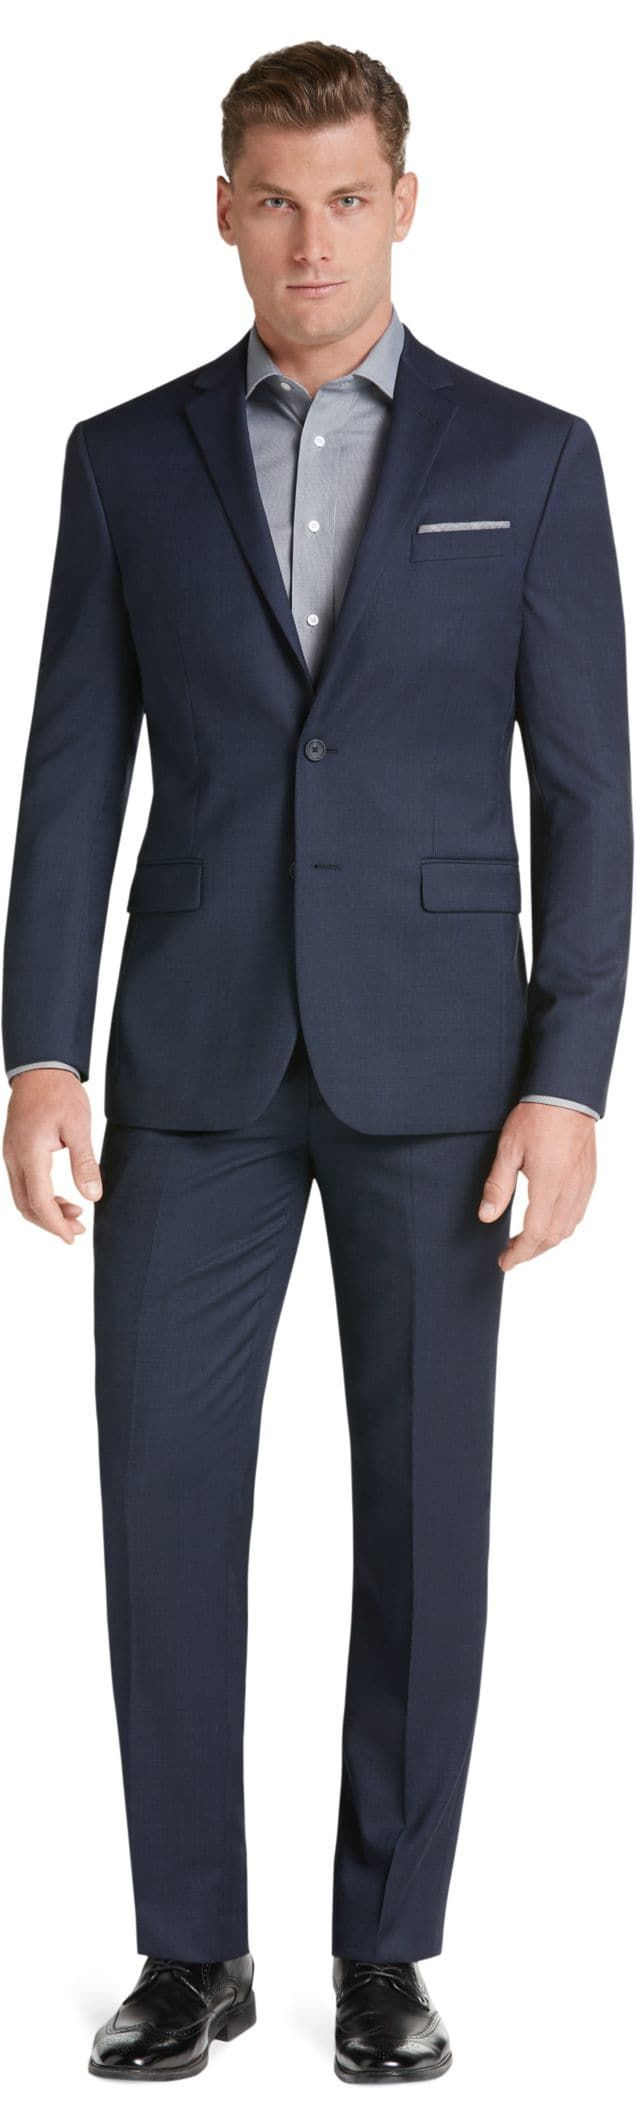 Travel Tech Collection Slim Fit Micro Stripe Suit Separate Jacket - Big & Tall